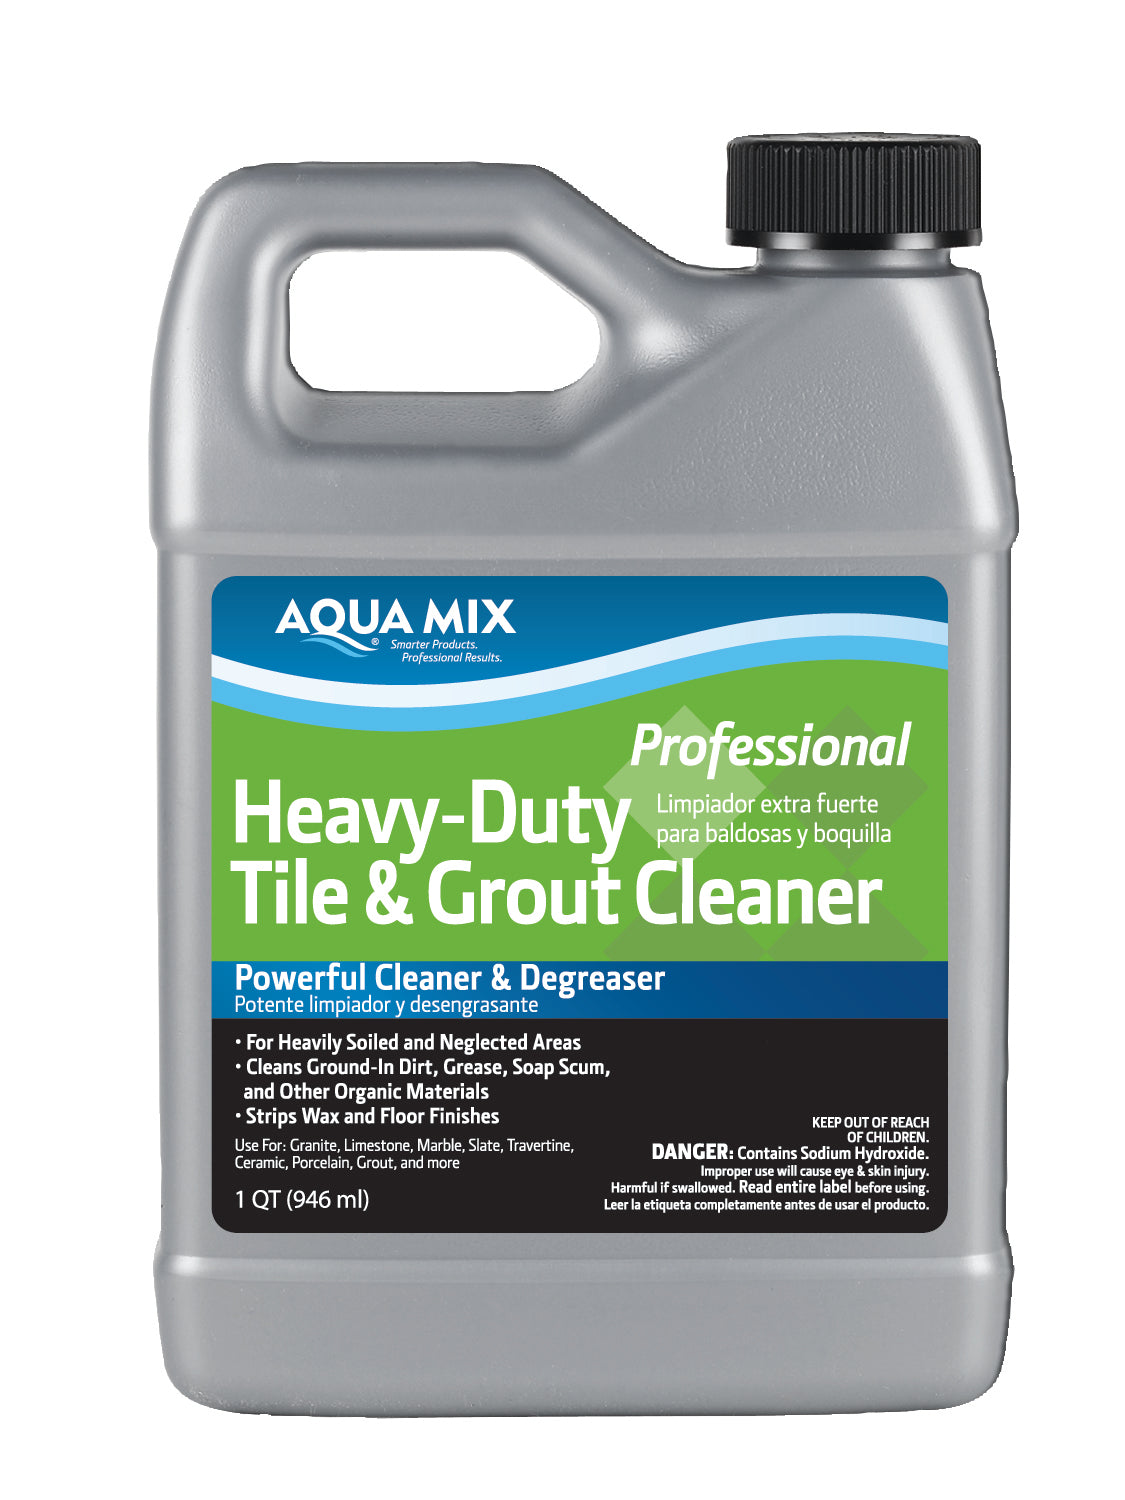 Aqua Mix Heavy Duty Tile and Grout Cleaner